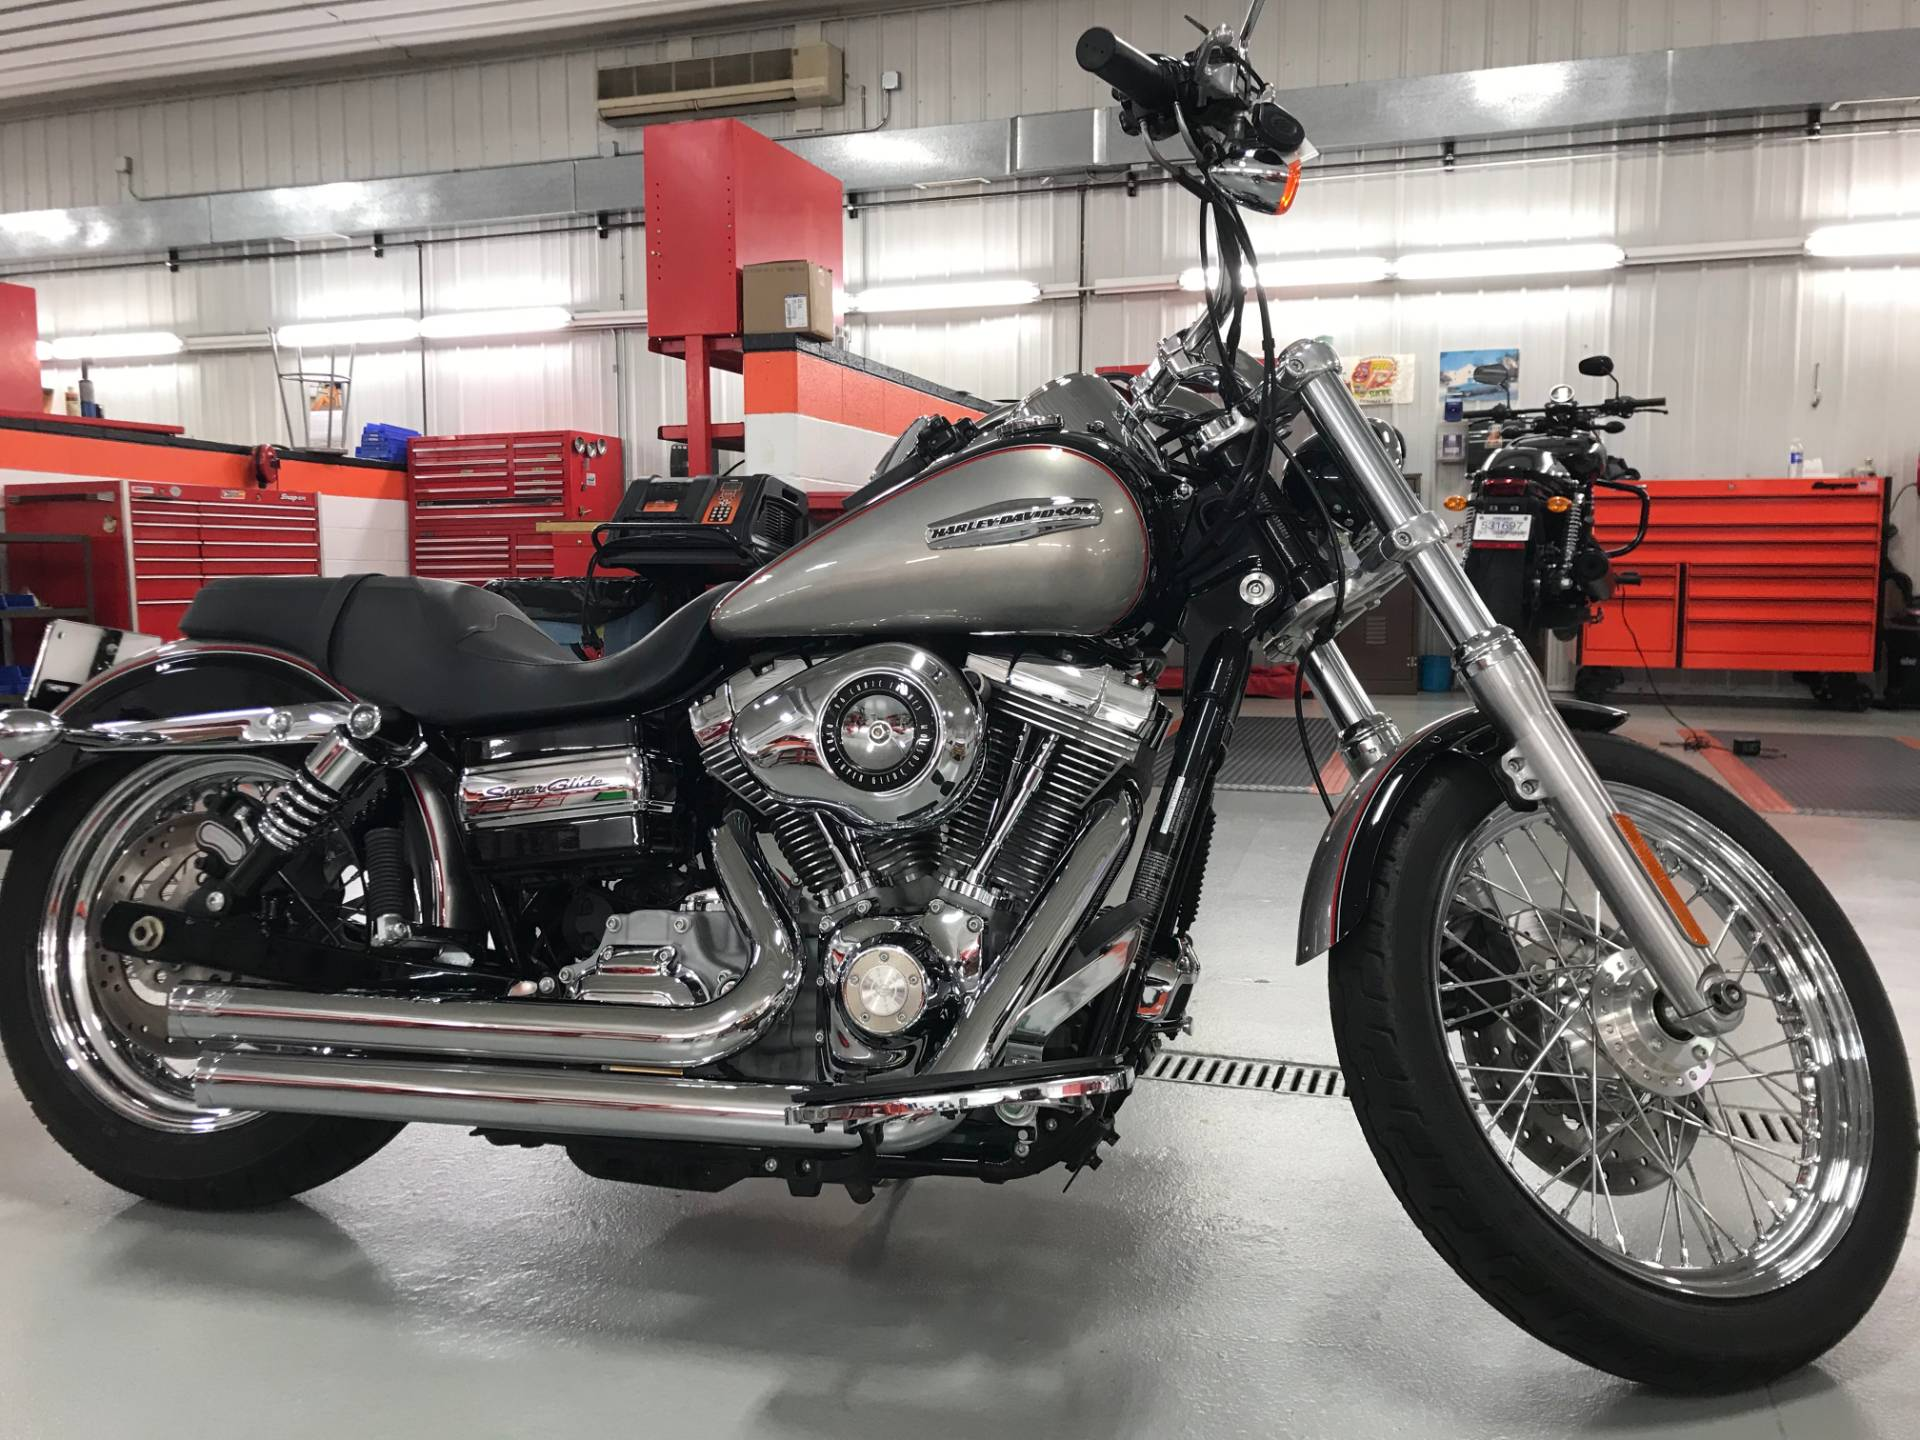 2009 Harley-Davidson Dyna® Super Glide® Custom in Valparaiso, Indiana - Photo 2